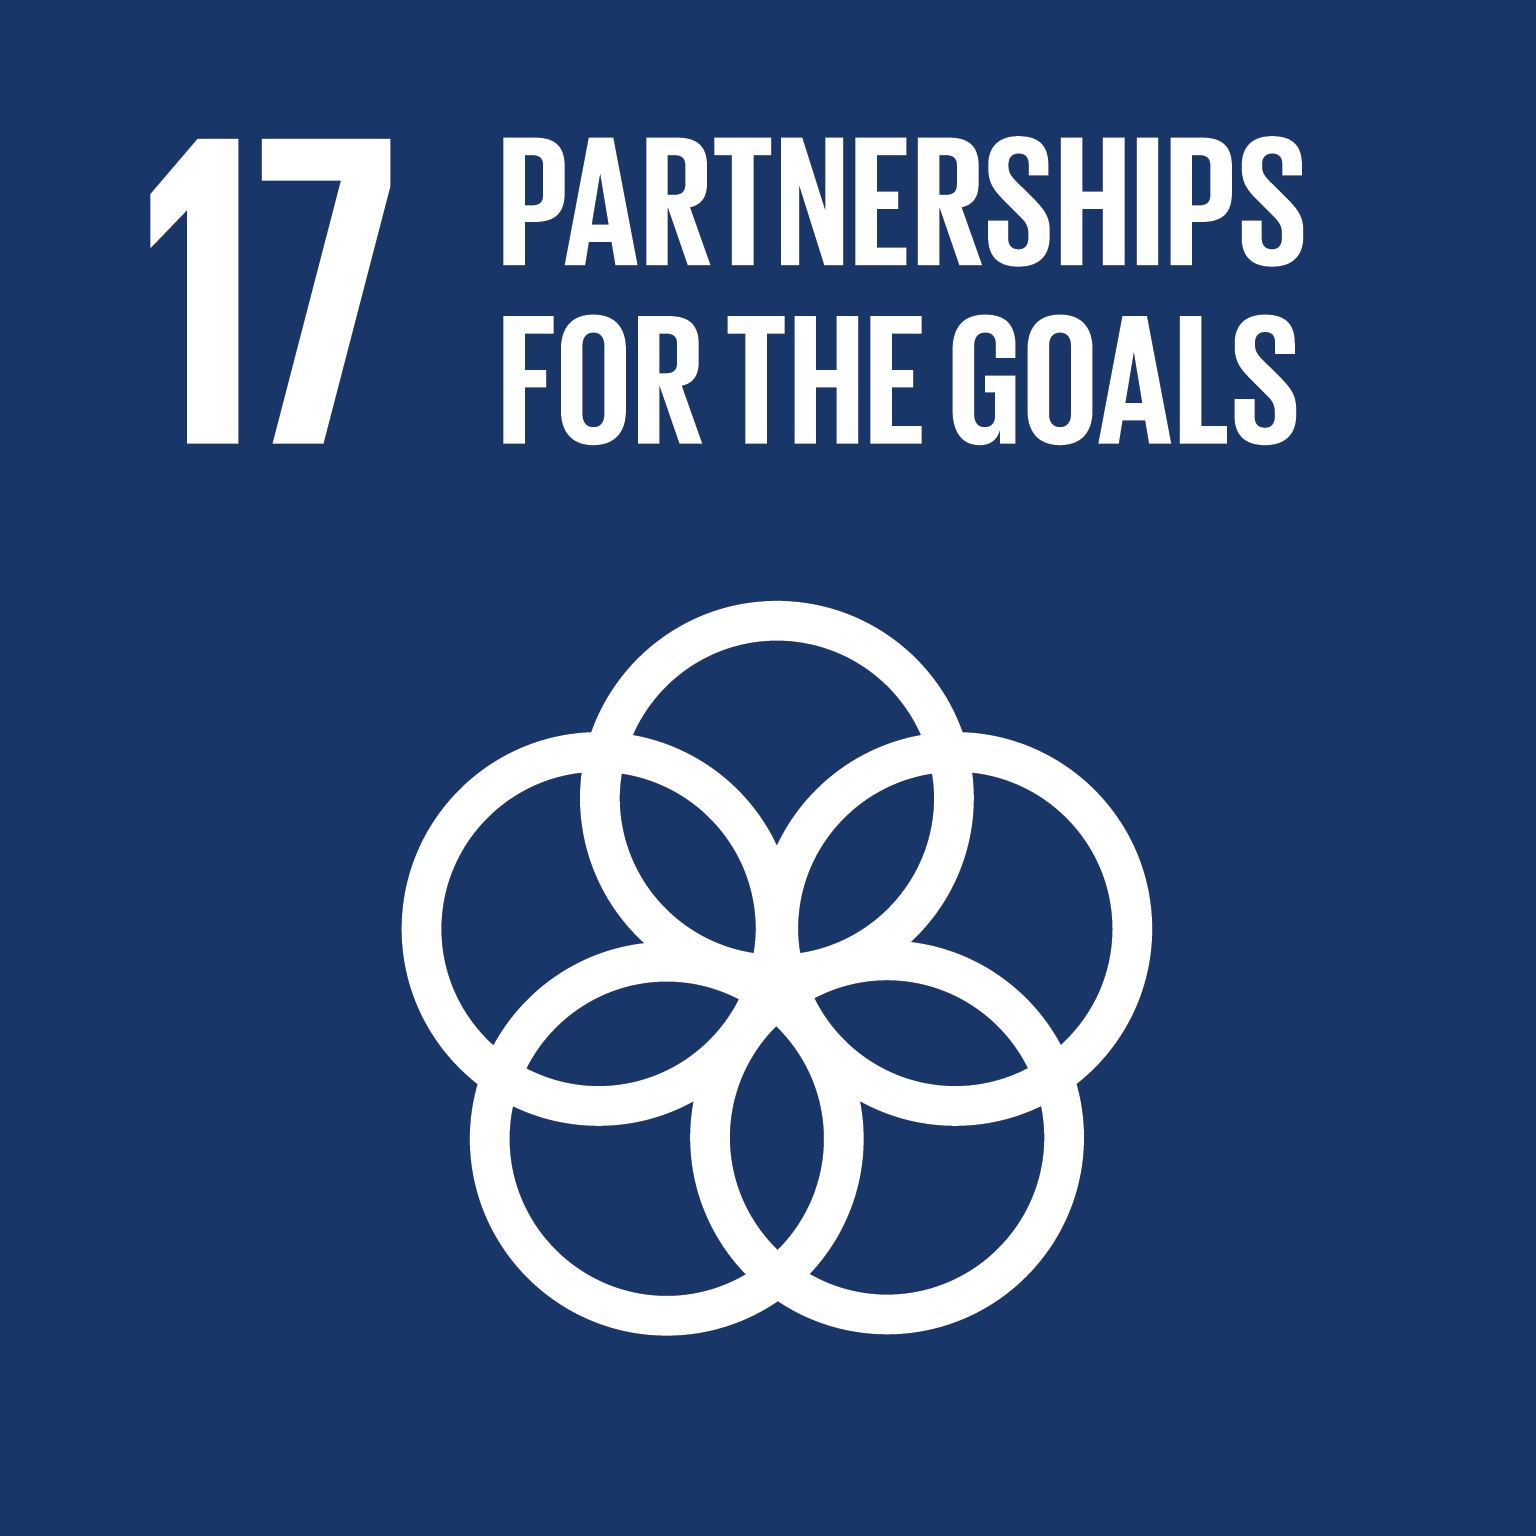 Sustainable Development Goals SDGs